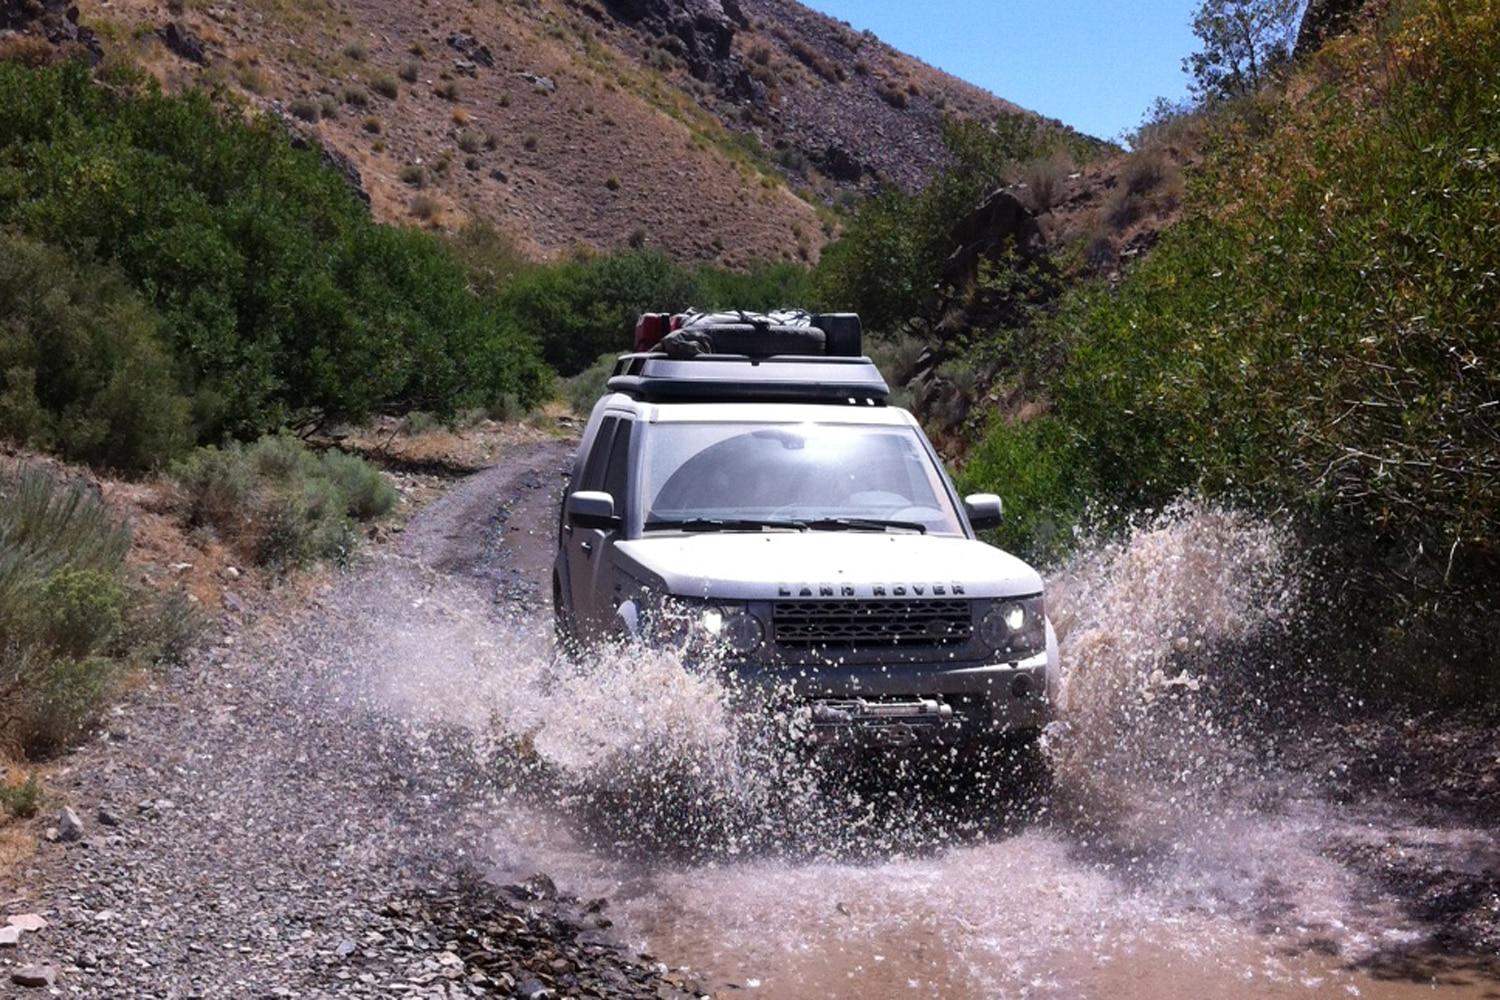 2013 Land Rover LR4 Land Rover Expedition America  8  splashing through mud